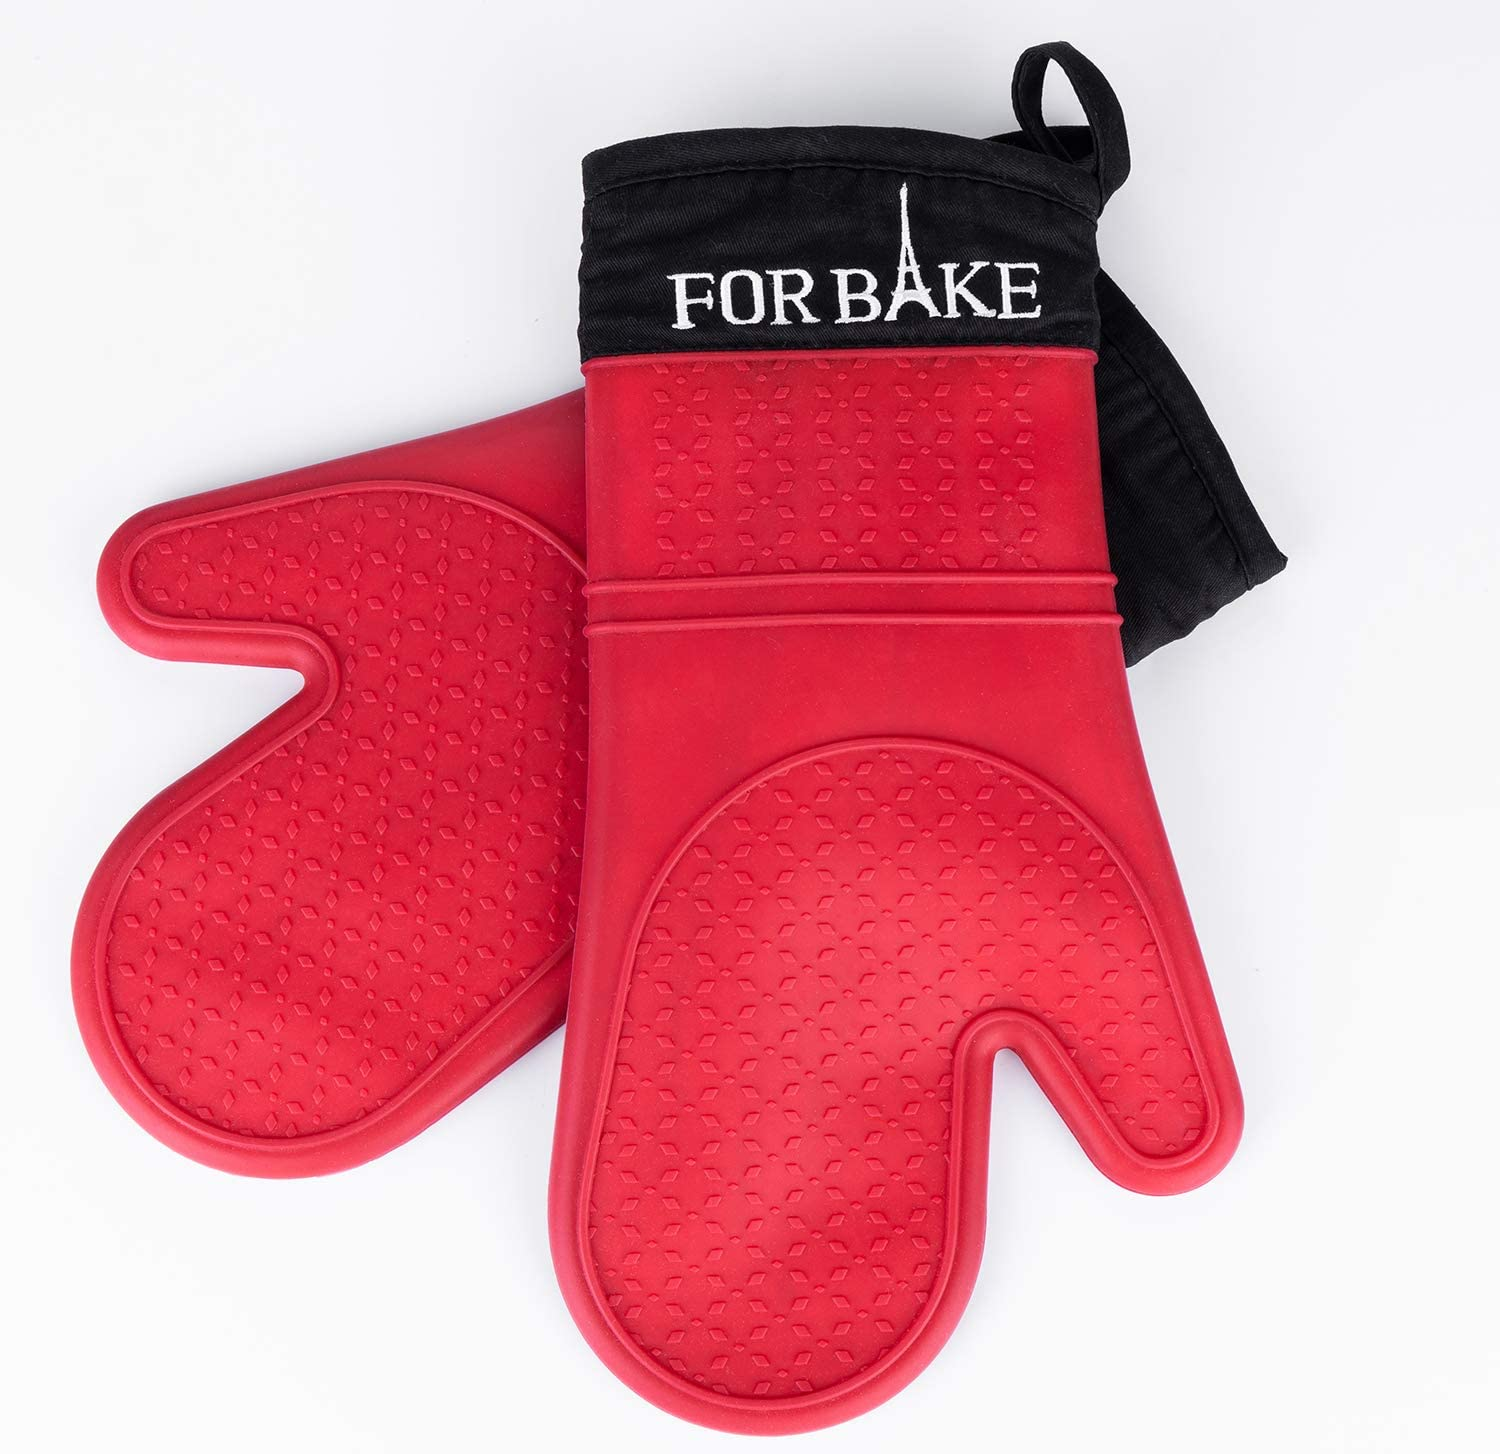 "Forbake Red Silicone Oven Mitts Heat Resistant Kitchen Baking BBQ Gloves FDA Approved Silicone BPA Free Oil Proof Oven Mitts -13.5""×7 2pack"